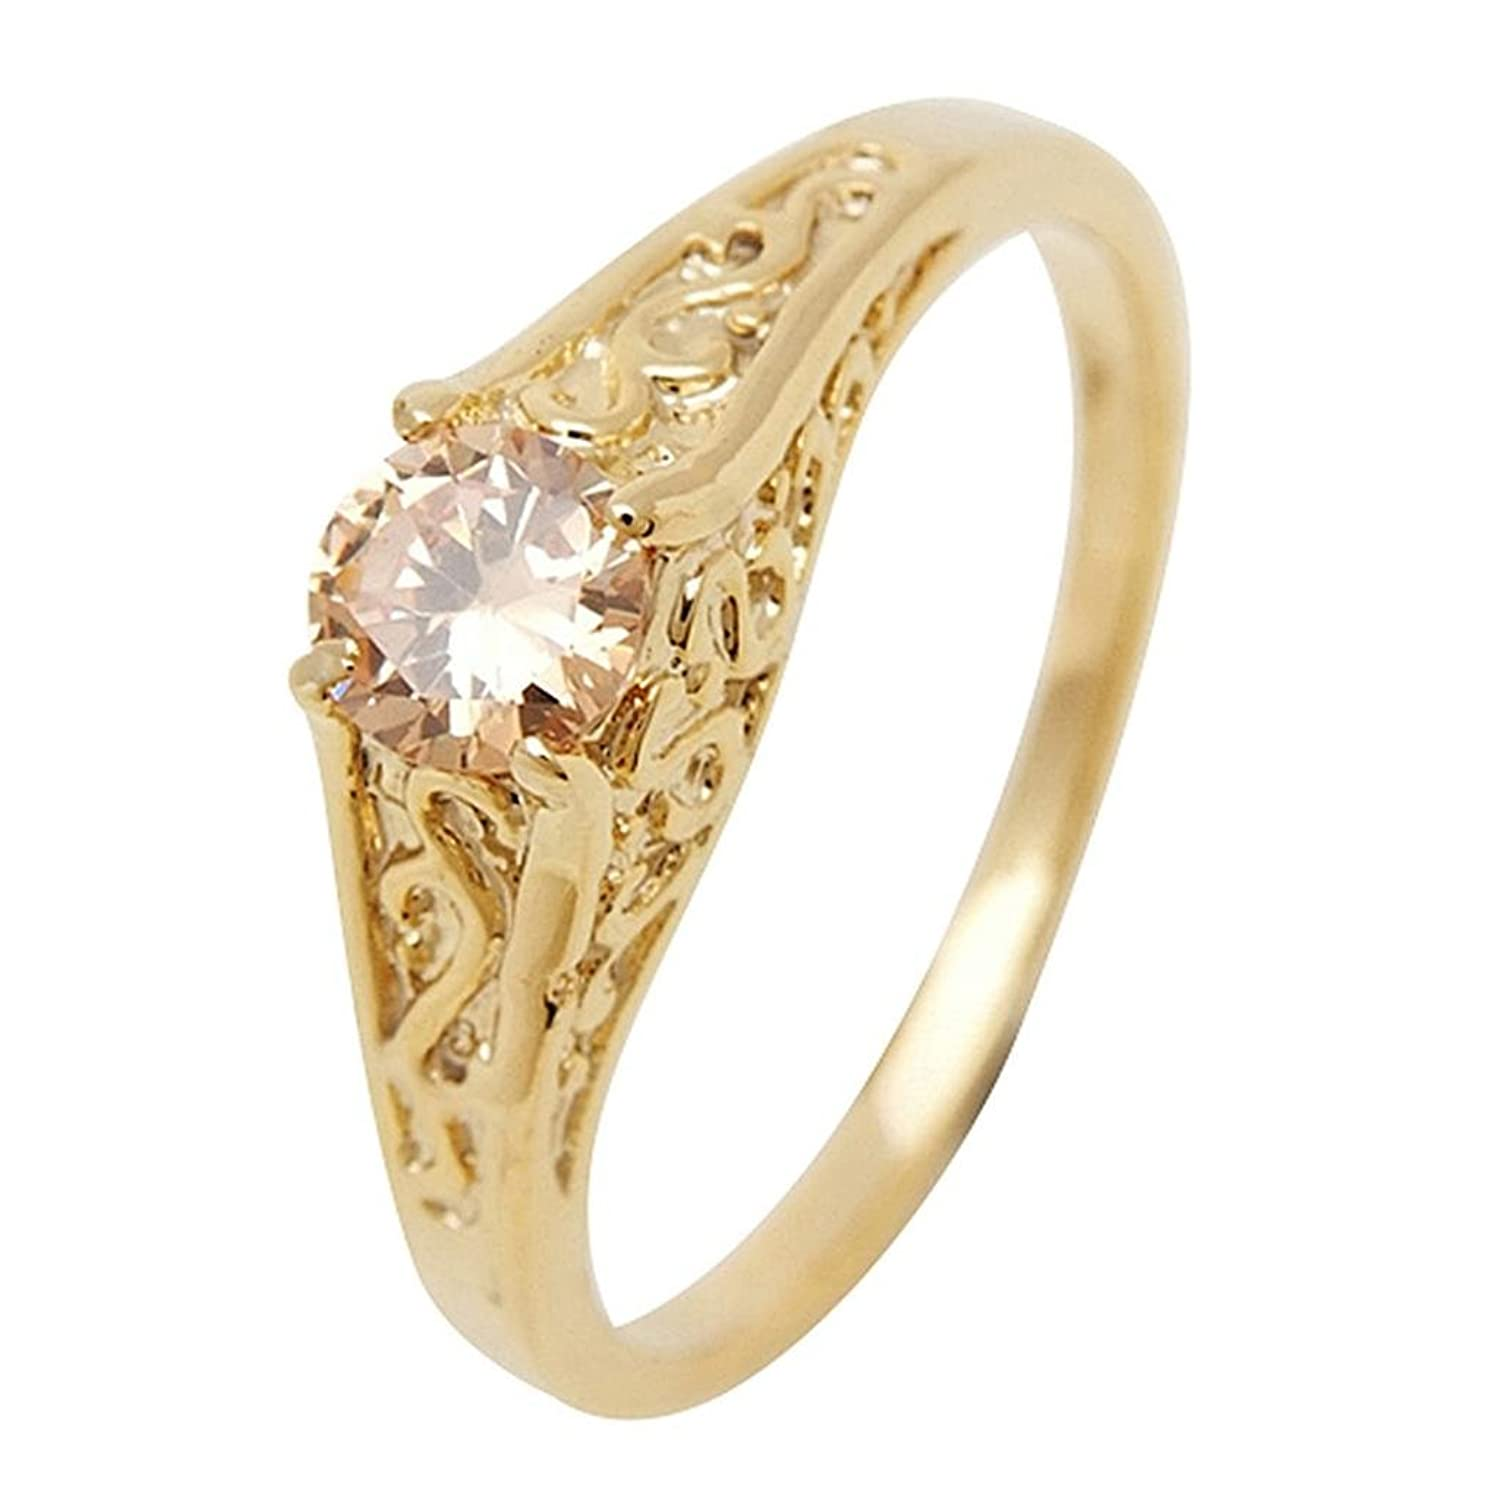 Followmoon 18K Gold Plated Use Cubic Zirconia Crystal Engagement Wedding Ring